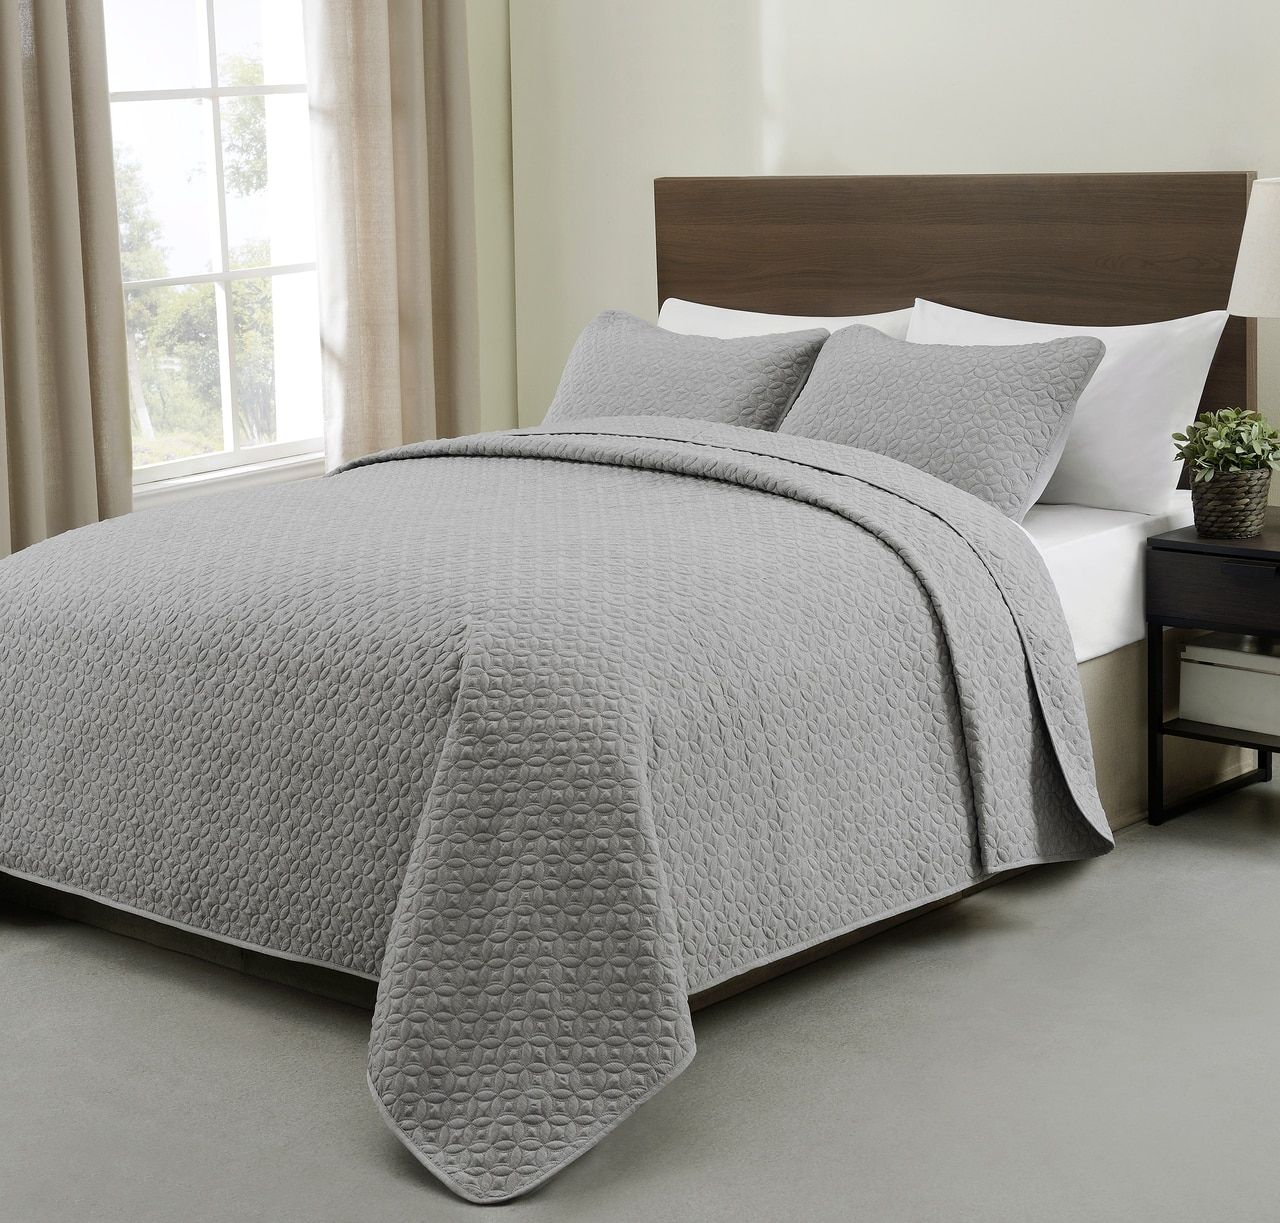 Allyson 3 Piece Quilted Coverlet/Bedspread Set Grey Color